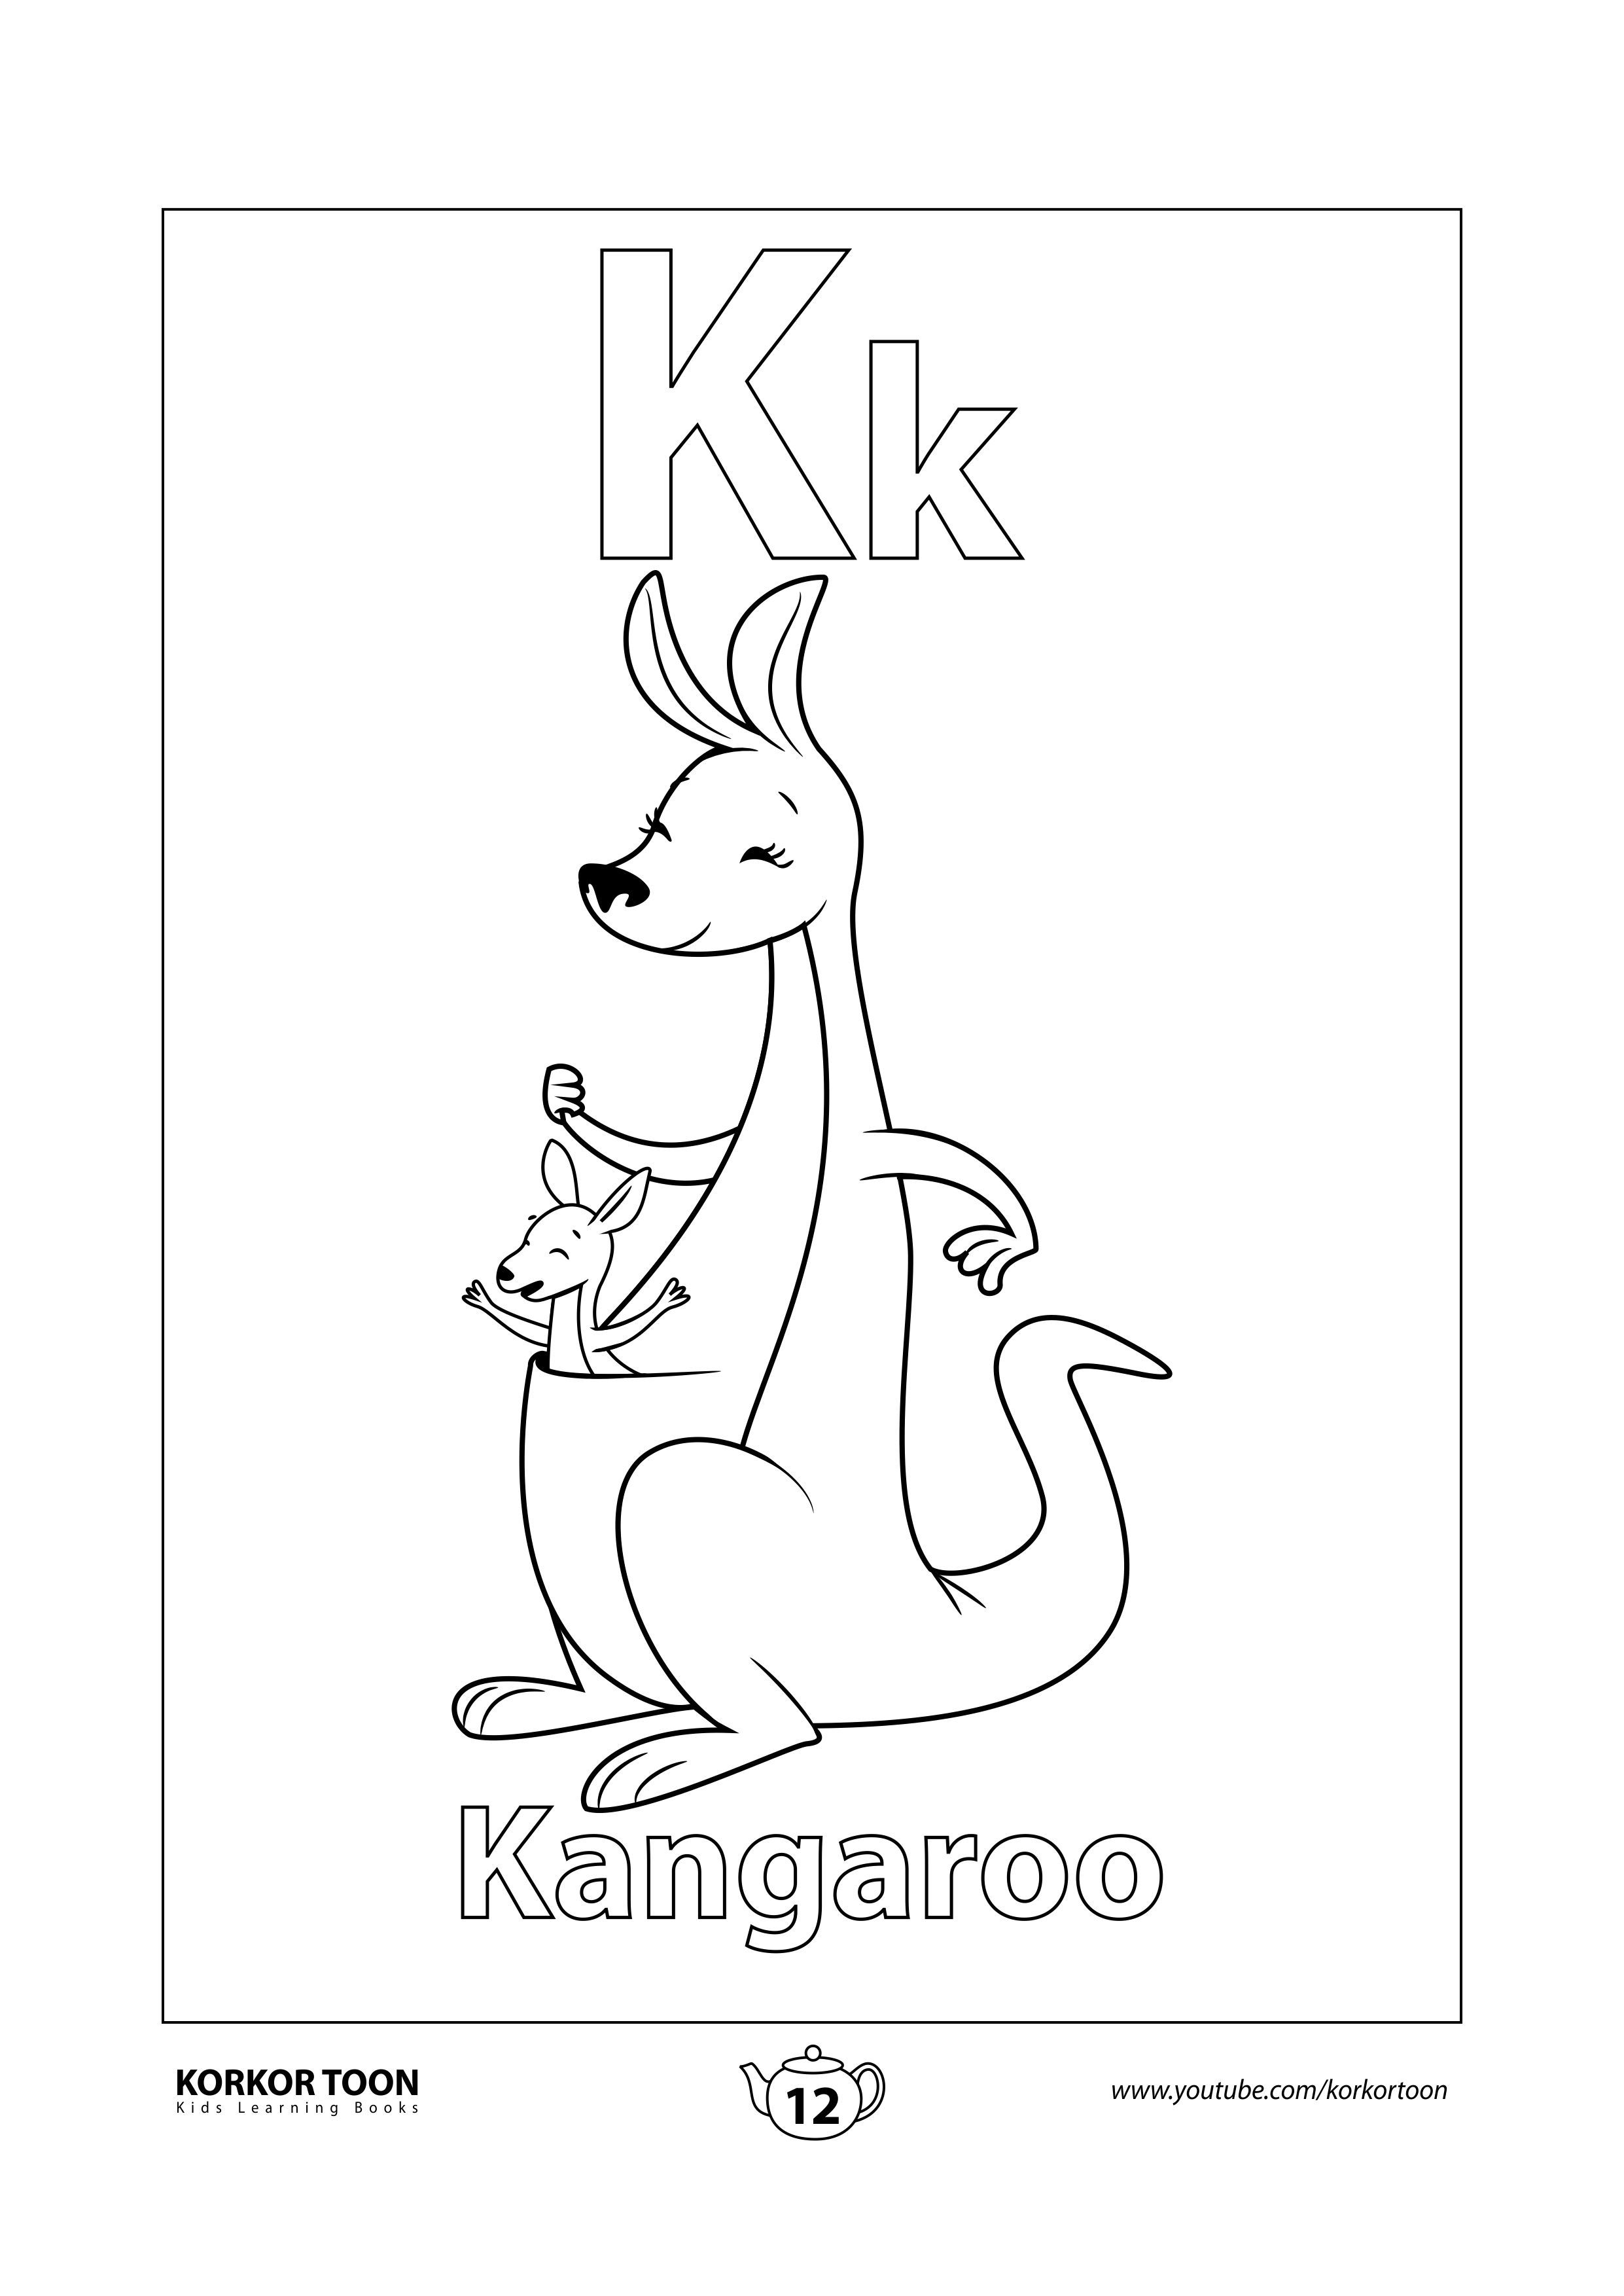 Kangaroo Coloring Page Abc Coloring Book Kids Printable Coloring Pages Coloring Books Stitch Coloring Pages